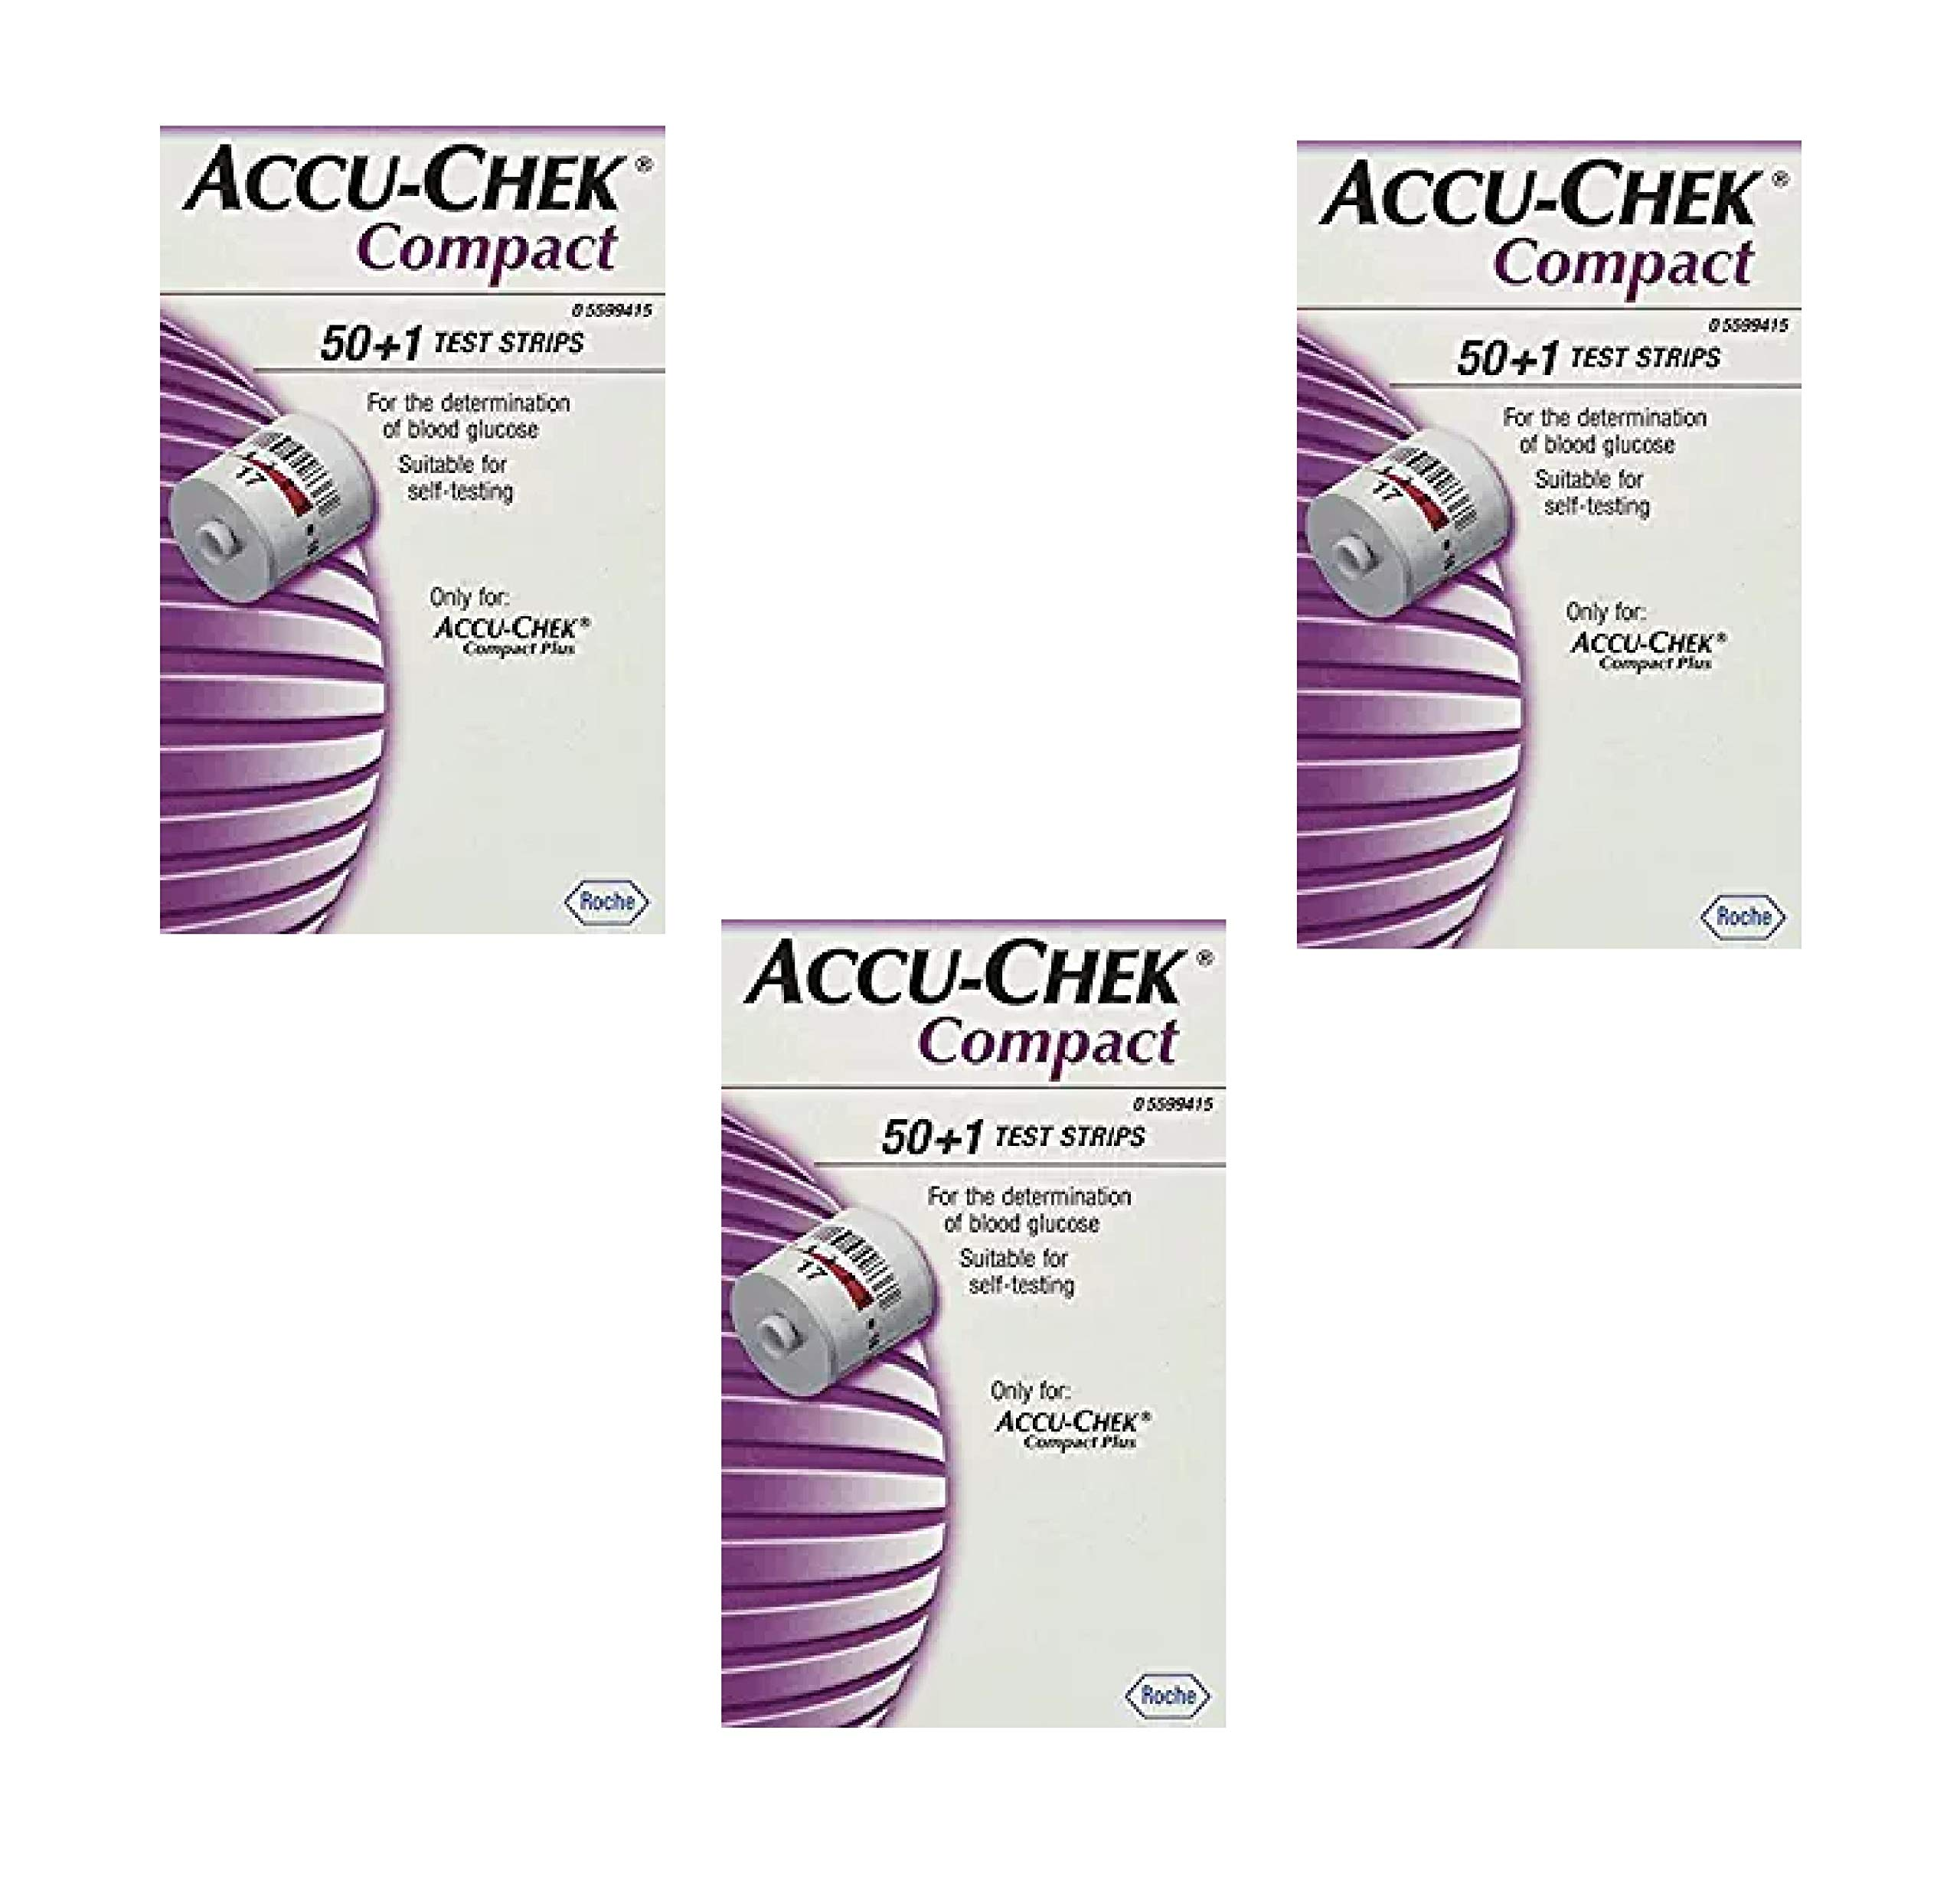 Accu Chek Compact Test Strips 51 Each (3 Pack) by Accu Chek (Image #1)